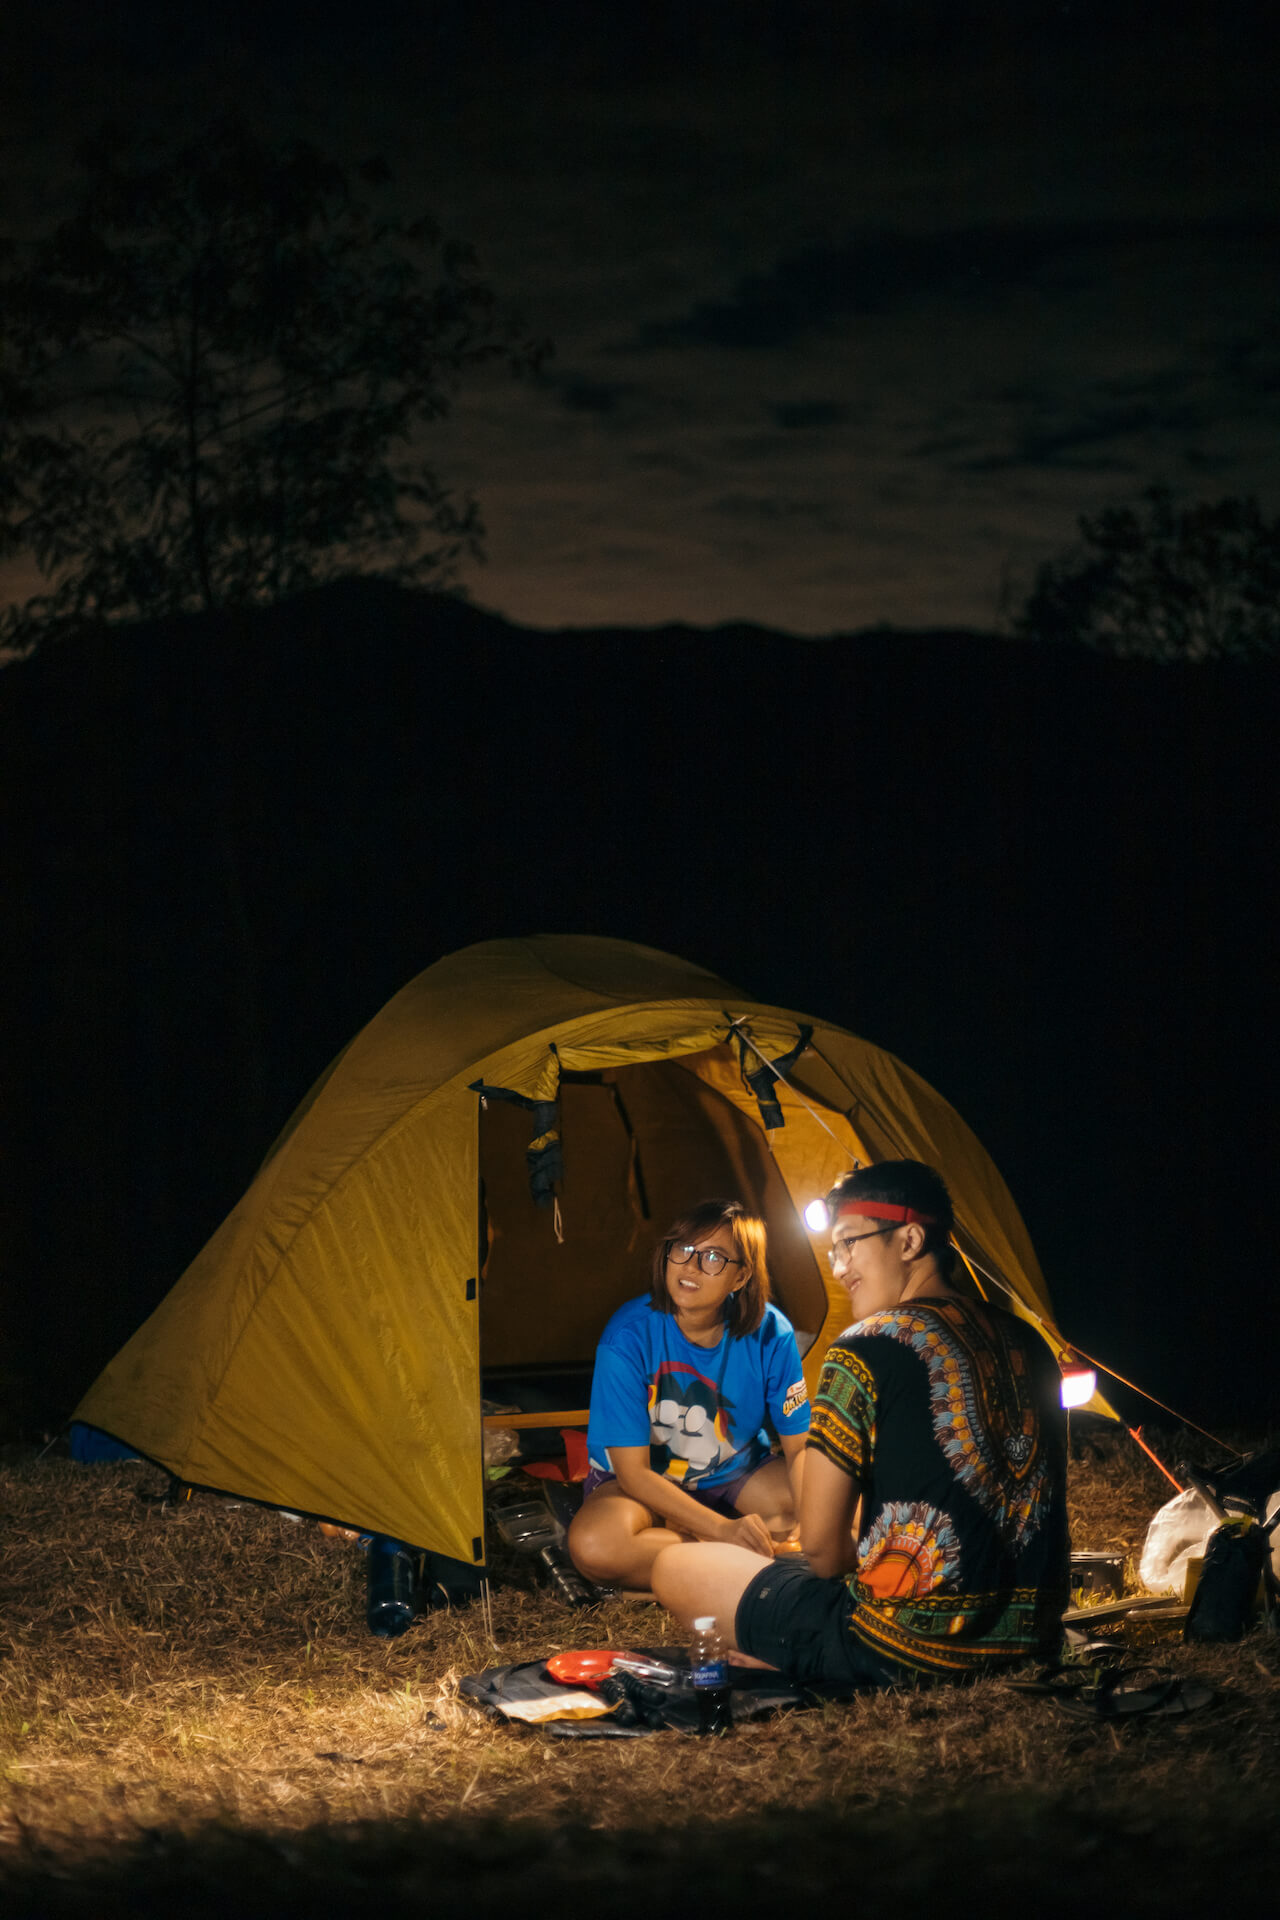 Philippine Astronomical Society members camping outside stargazing